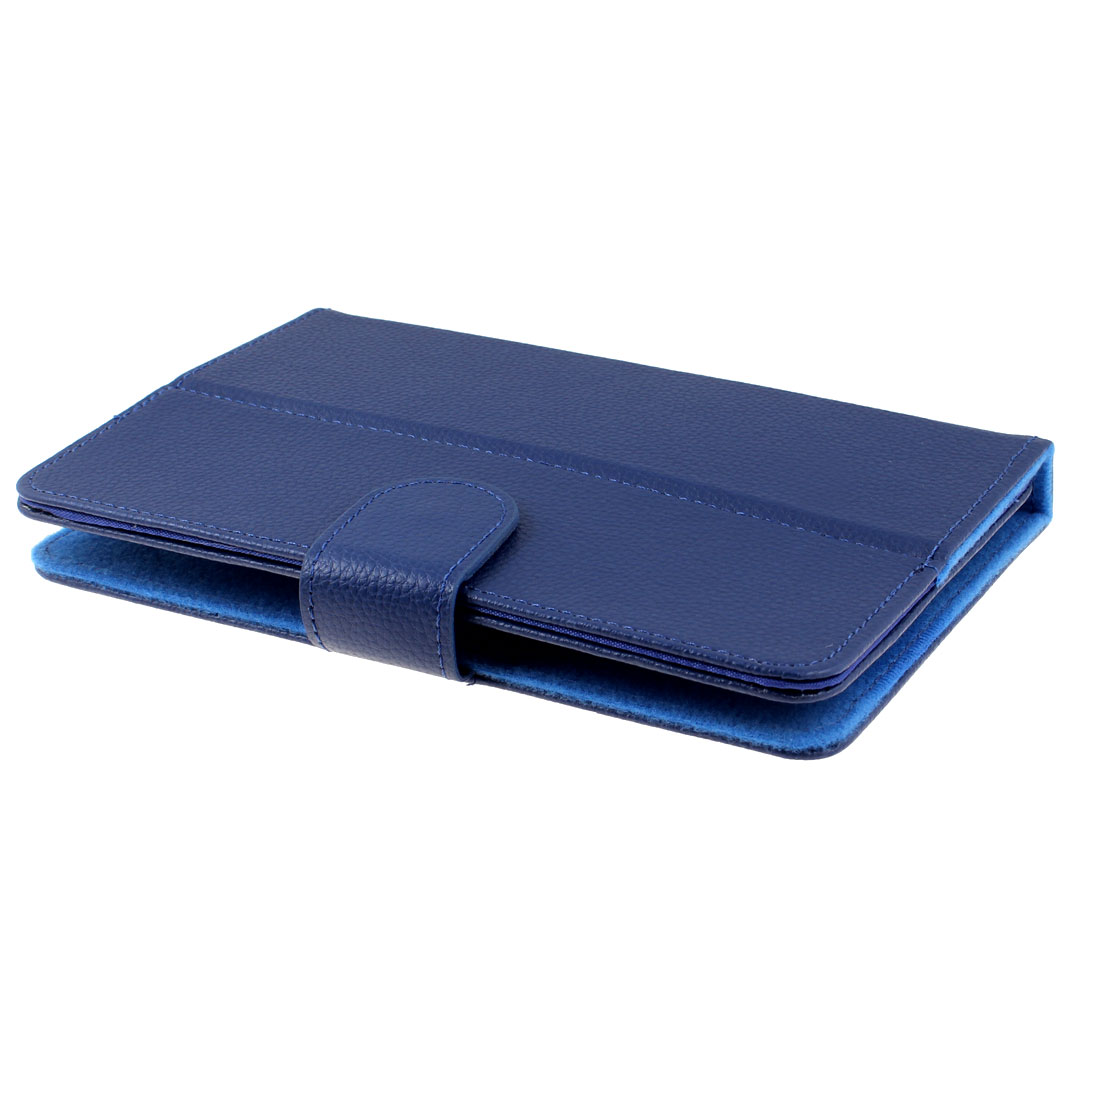 "Dark Blue Faux Leather Folio Case Magnetic Flip Cover for Cobalt 7"" Android Tablet"